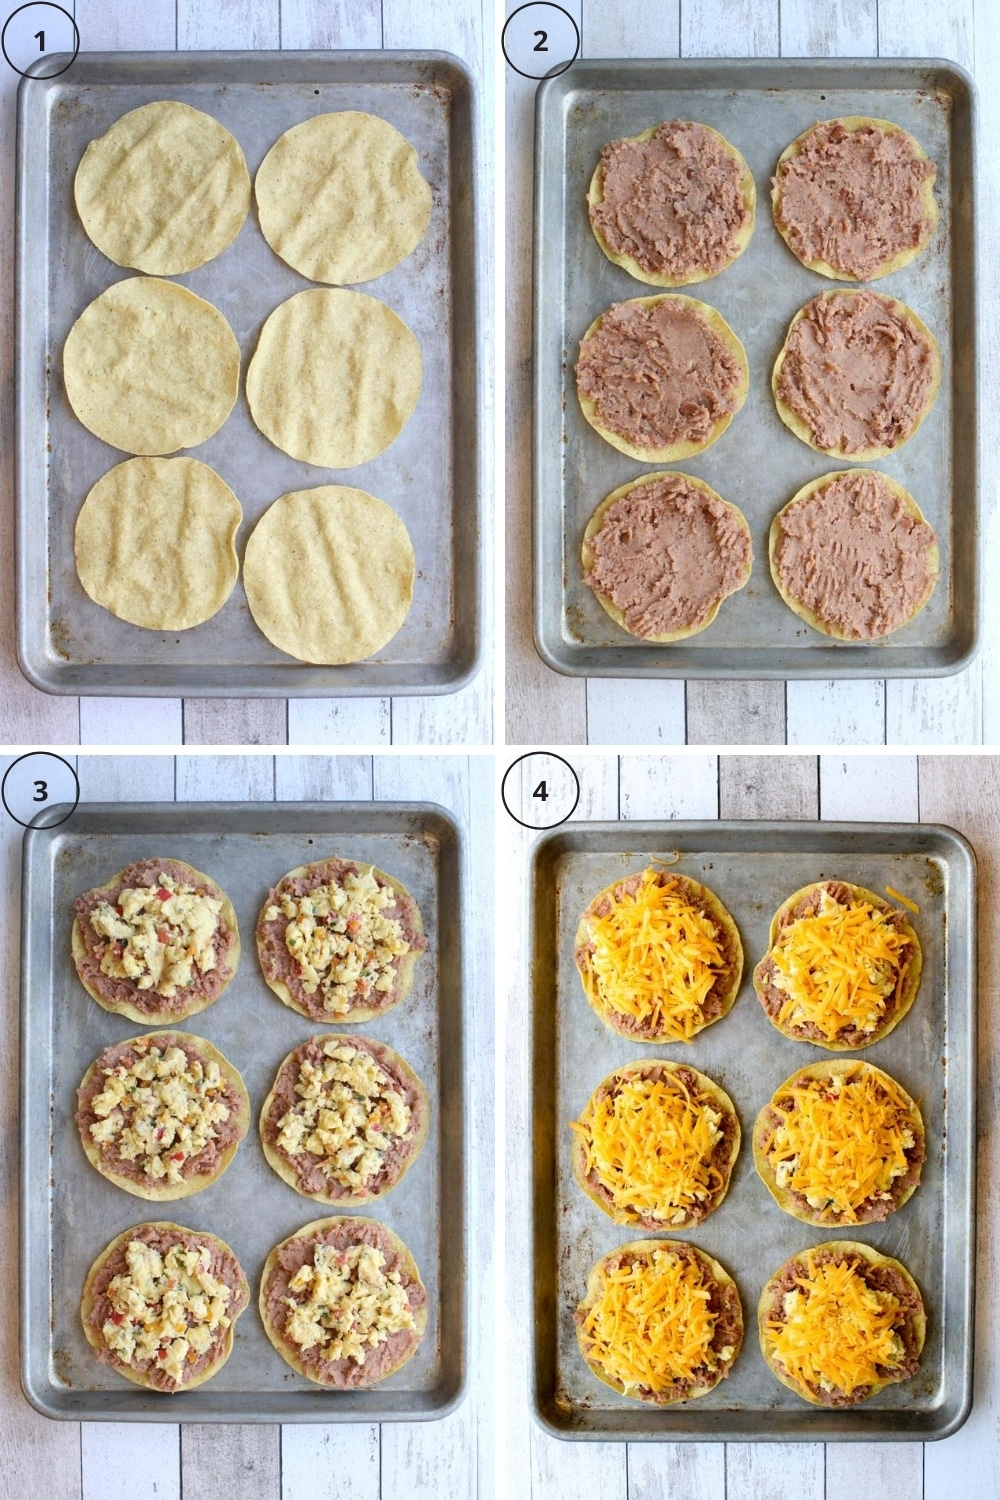 Photo of steps to assemble and bake breakfast tostadas